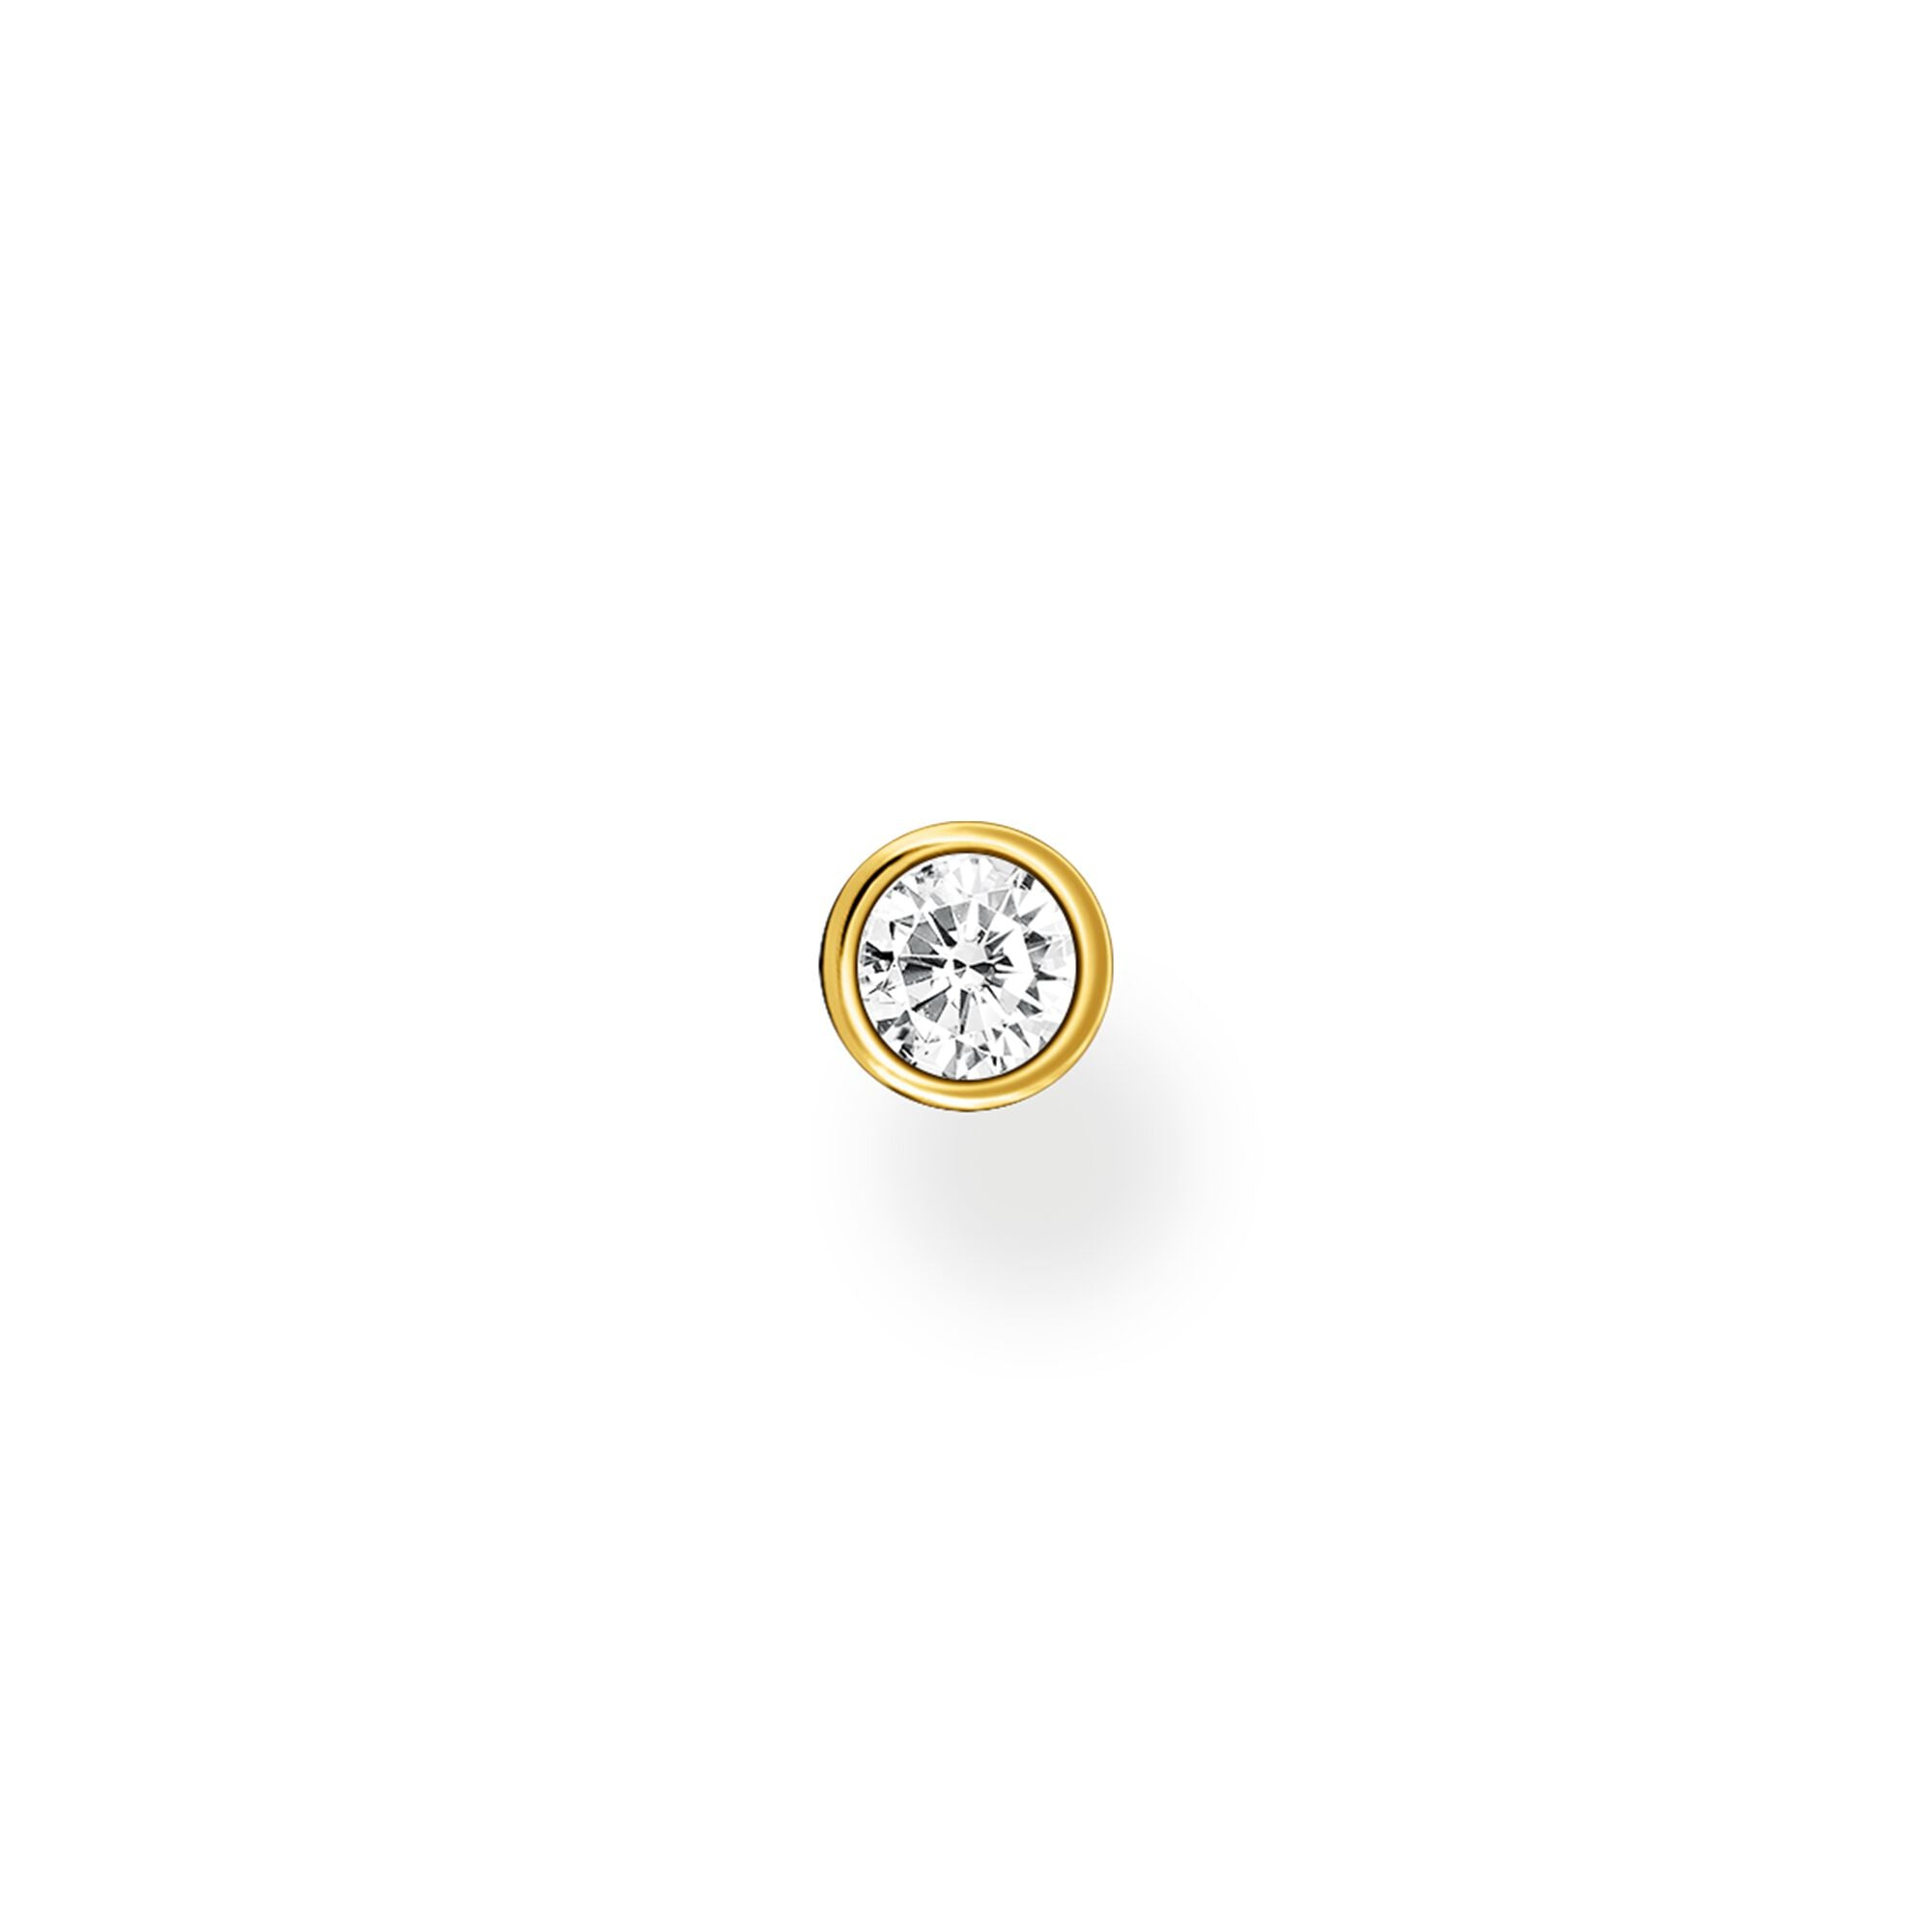 Thomas Sabo, Sterling Silver, Yellow Gold Plated, Cubic Zirconia, Single Stone, Single Stud Earring, Push backing, Ottawa